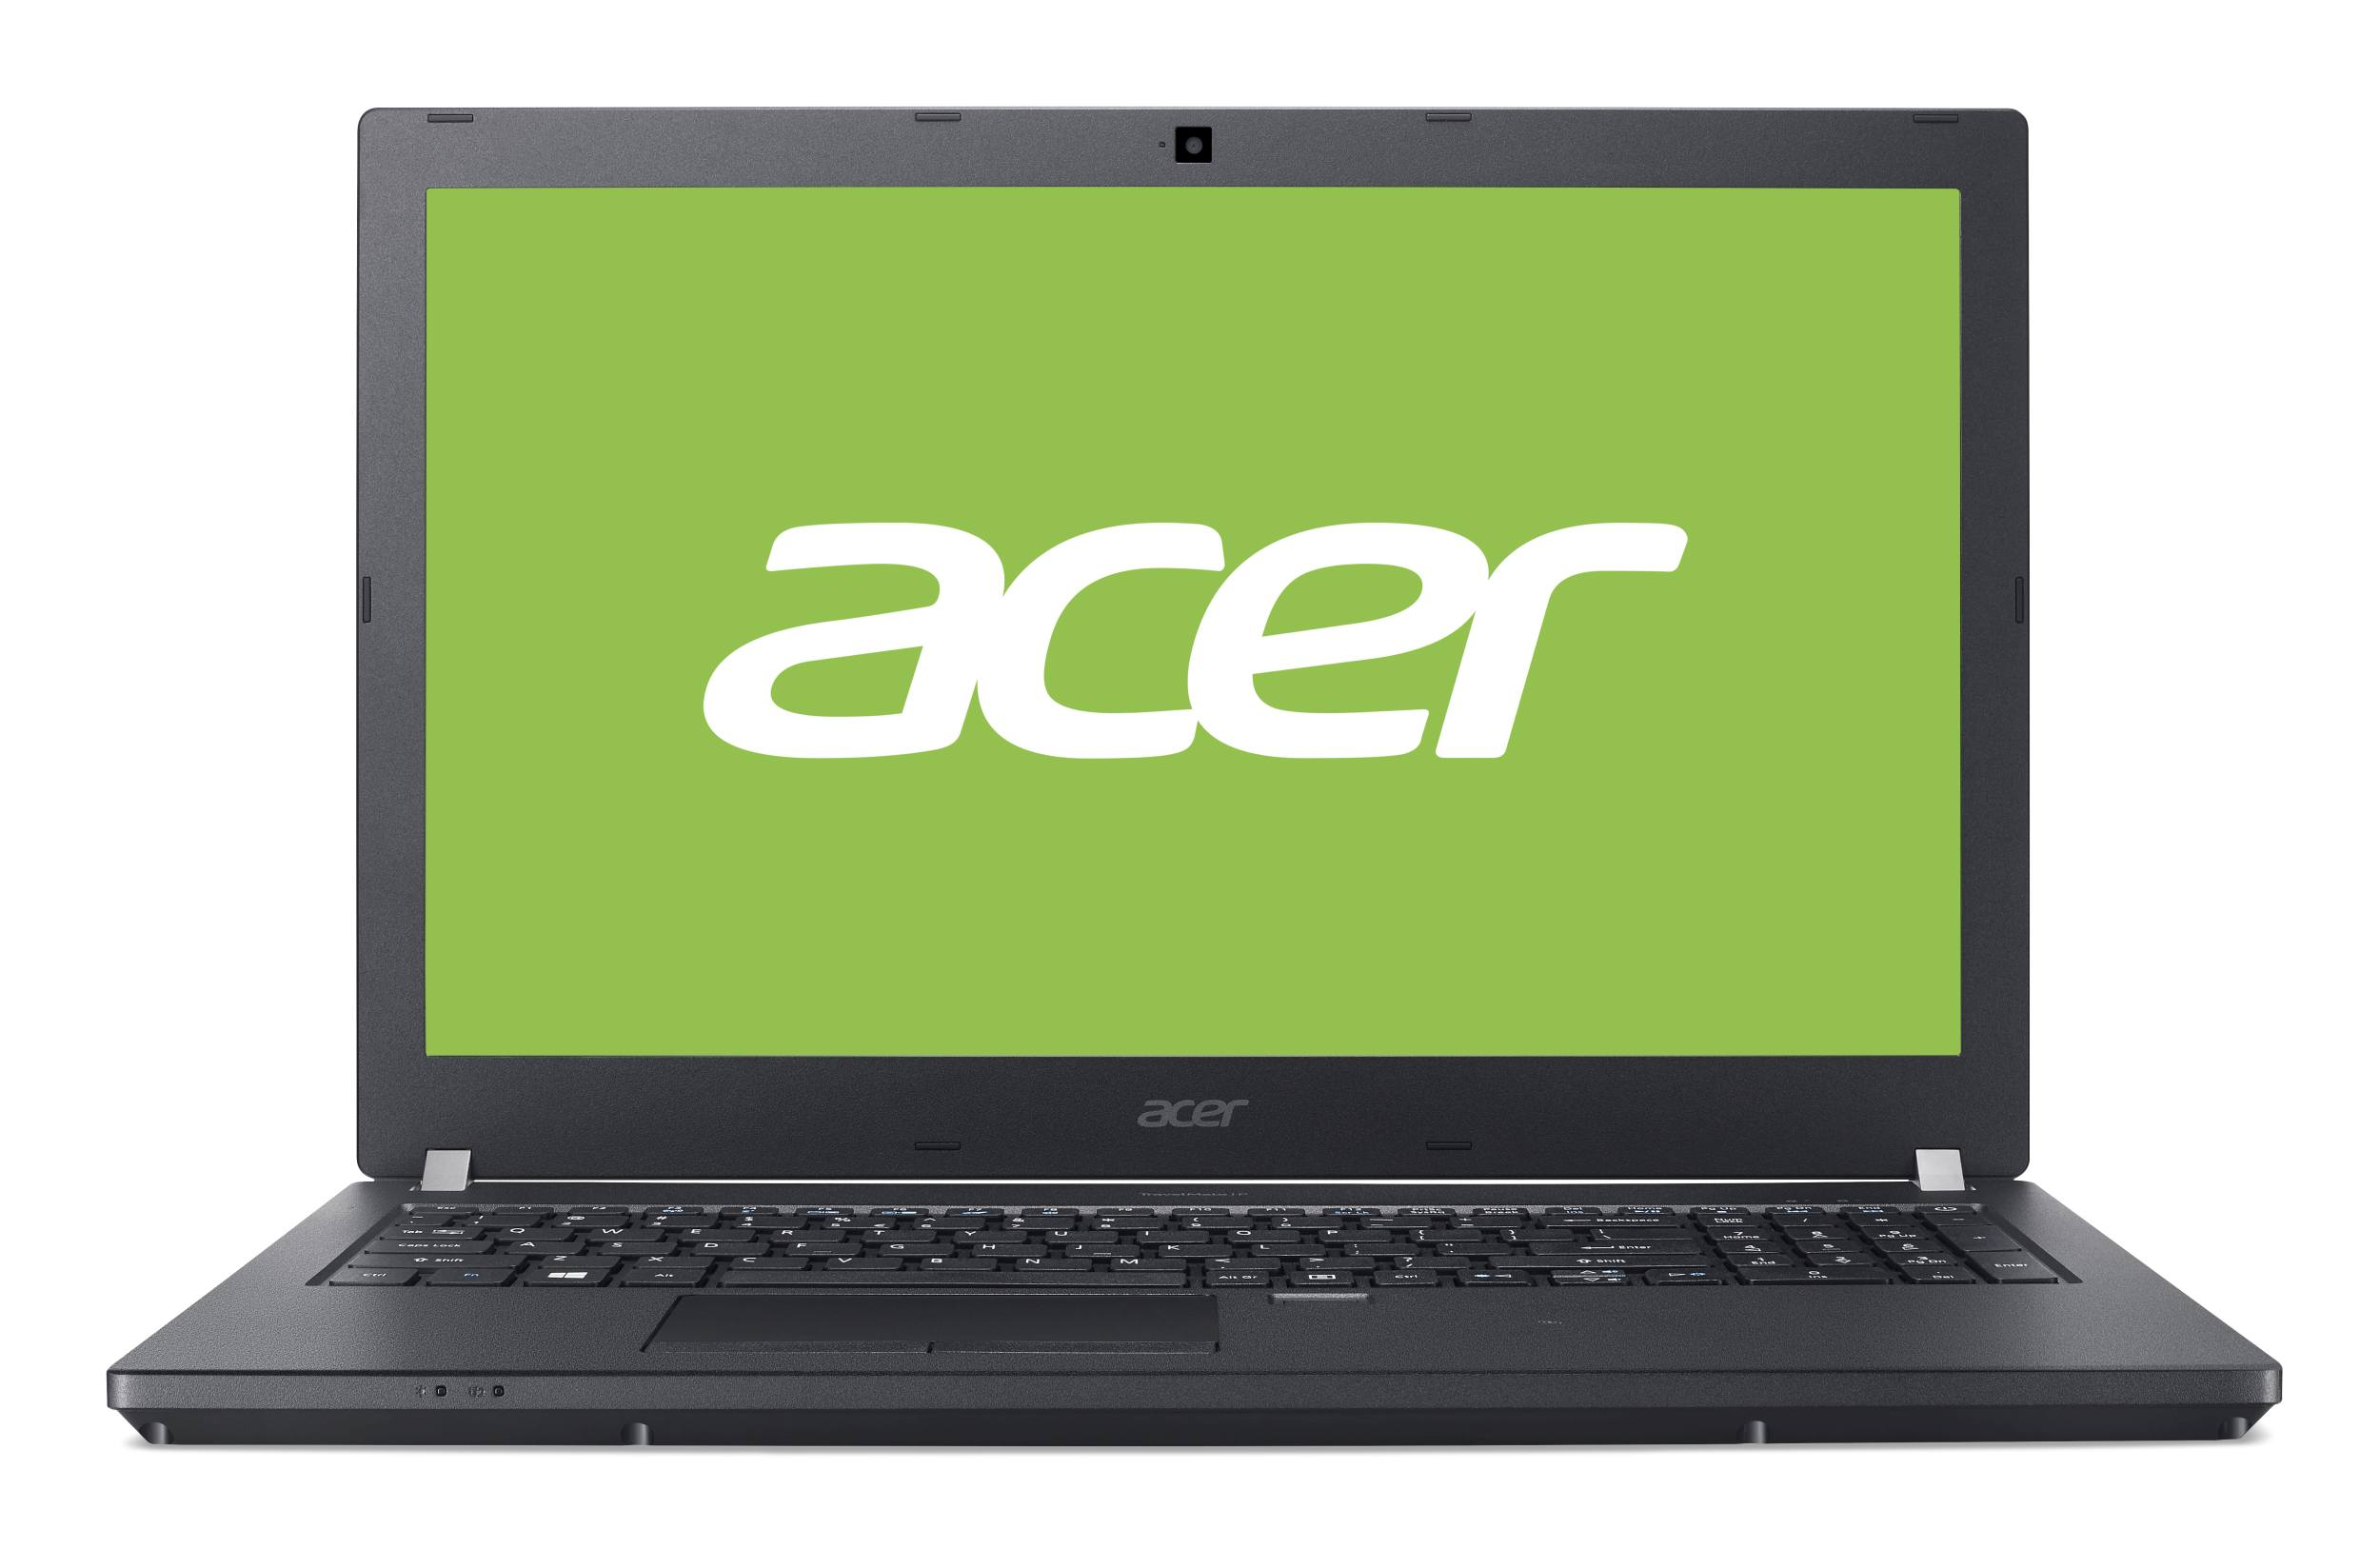 "AcerTravelMate TMP459-G2-M-56M7 i5-7200U/8GB+N/256GB PCIe SSD+N/HD Graphics/15,6"" FHD matný IPS LED/W10 Pro/Black"